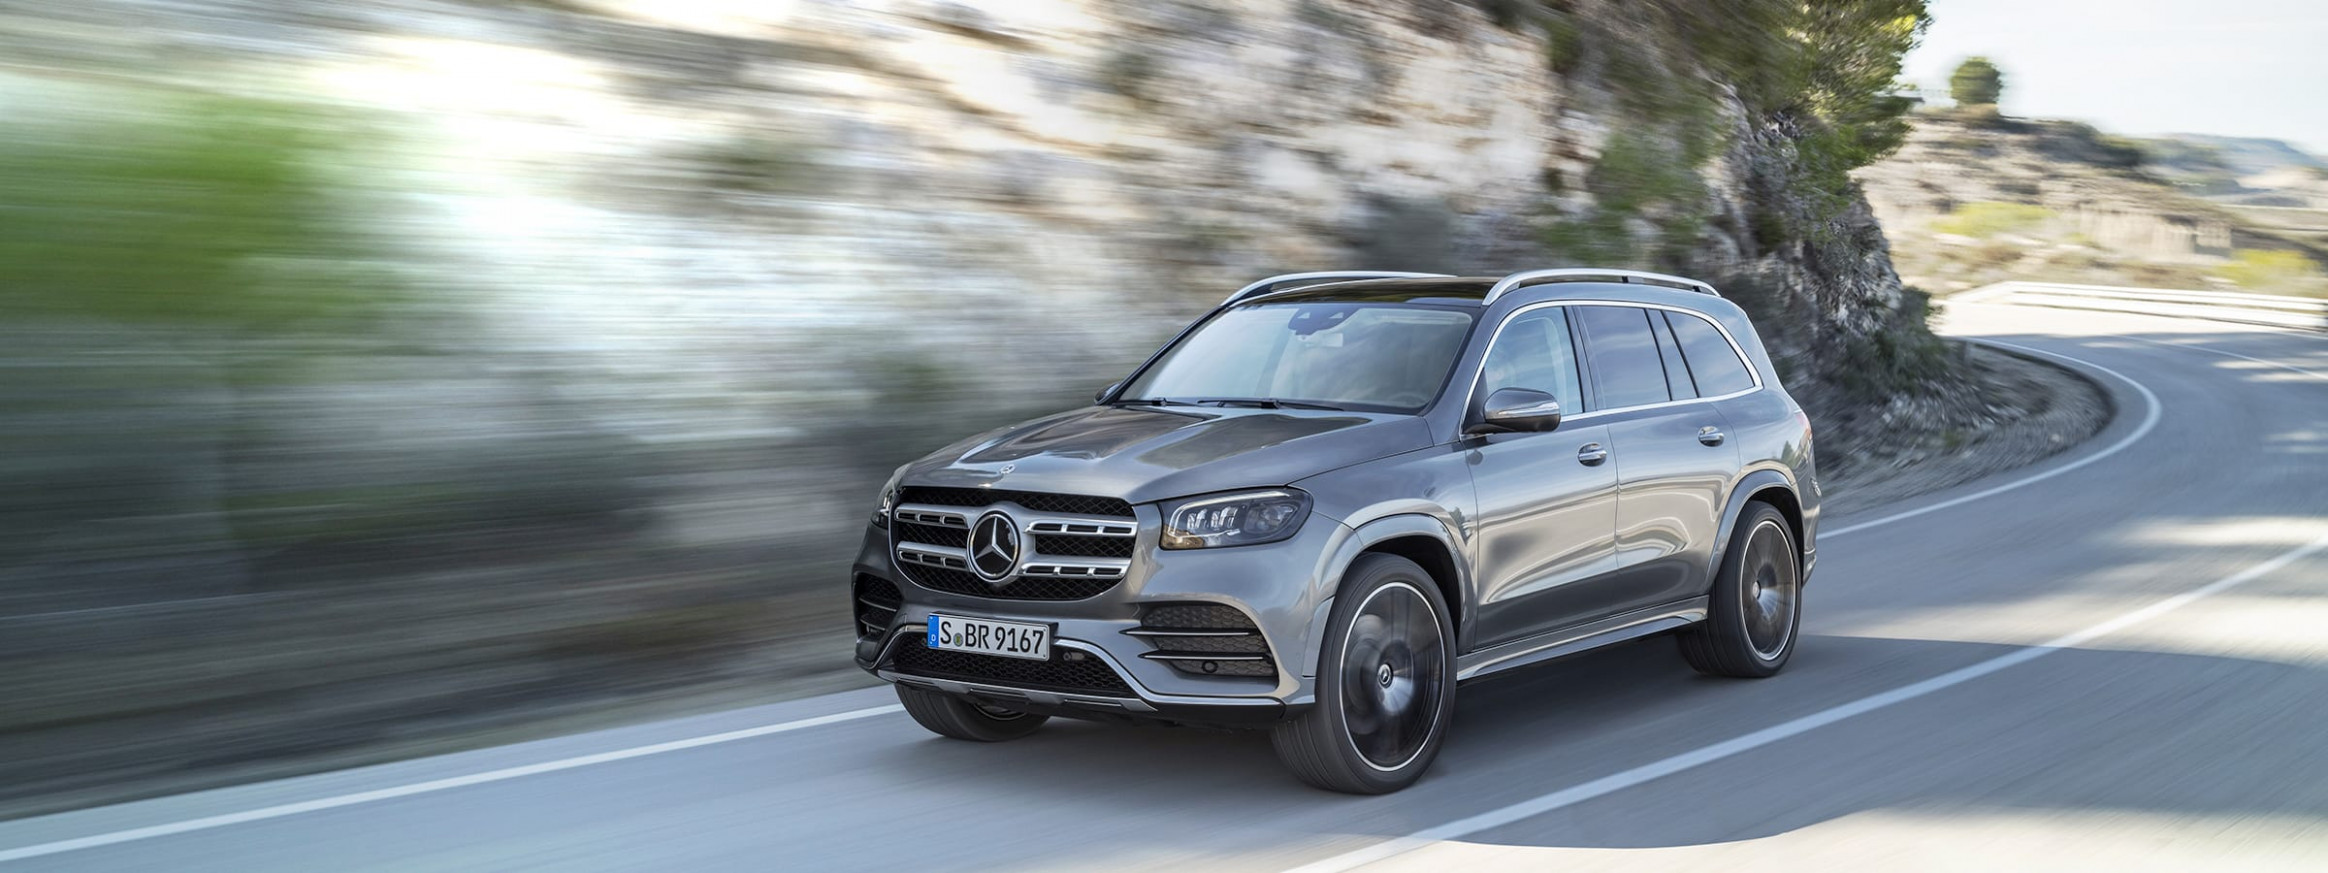 12 GLS SUV | Future Vehicles | Mercedes-Benz - mercedes suv 2020 models